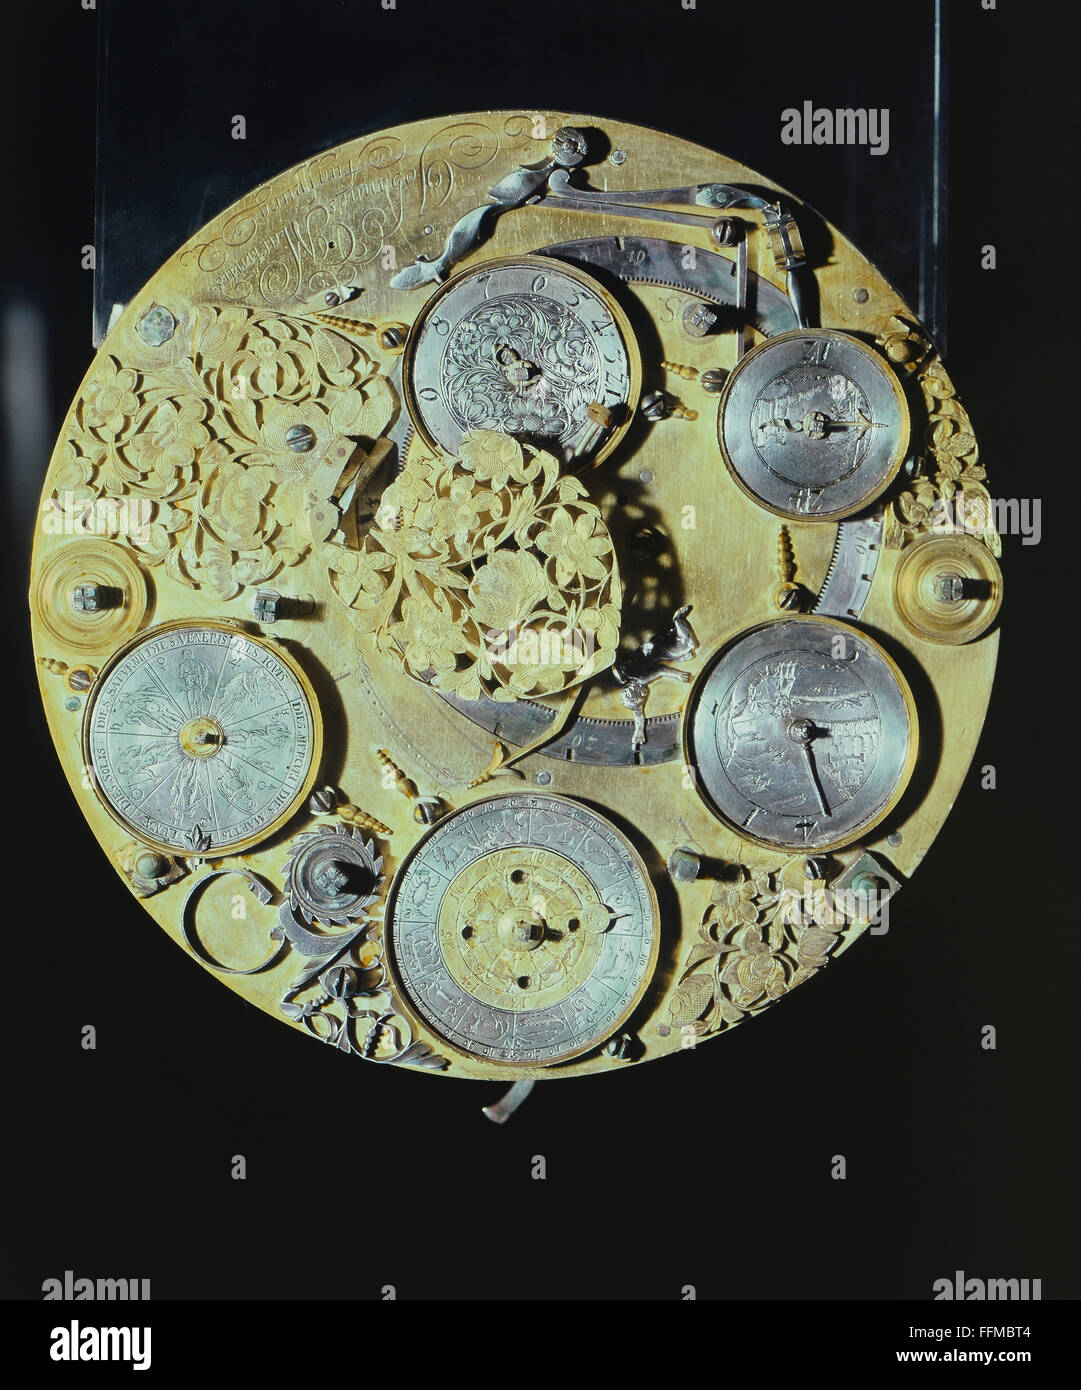 clock, clockwork of a table clock, by Johannes Martinus, brass, gold-plated, Augsburg, late 17th century, Bavarian - Stock Image